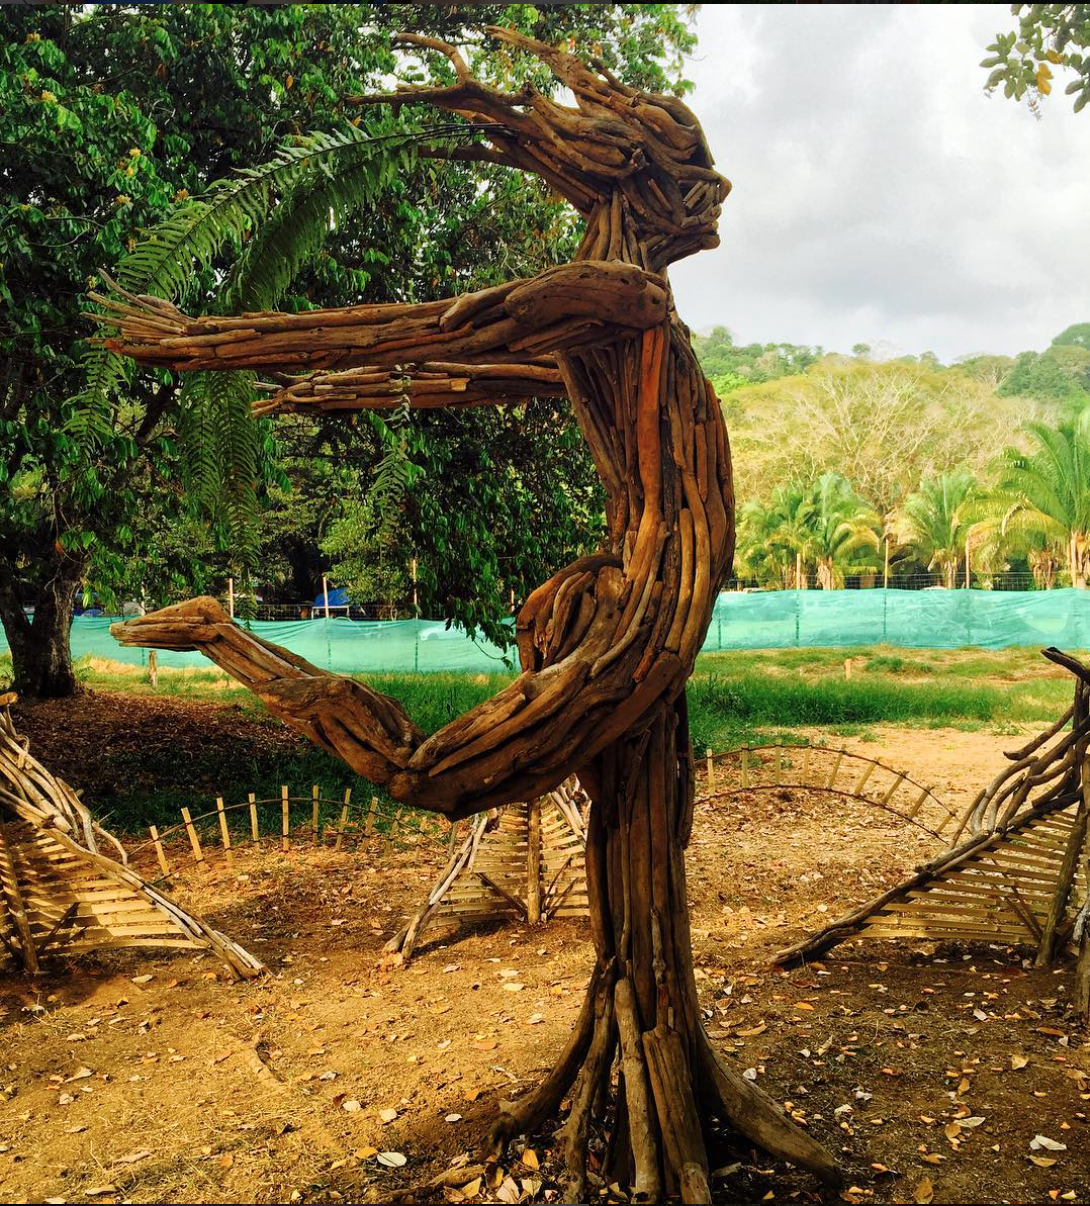 Chakira driftwood sculpture art envision festival costa rica chakira driftwood sculpture art envision festival costa rica 2016 design collaboration with jacquelin pitre inspired by the heart chakra symbol biocorpaavc Gallery